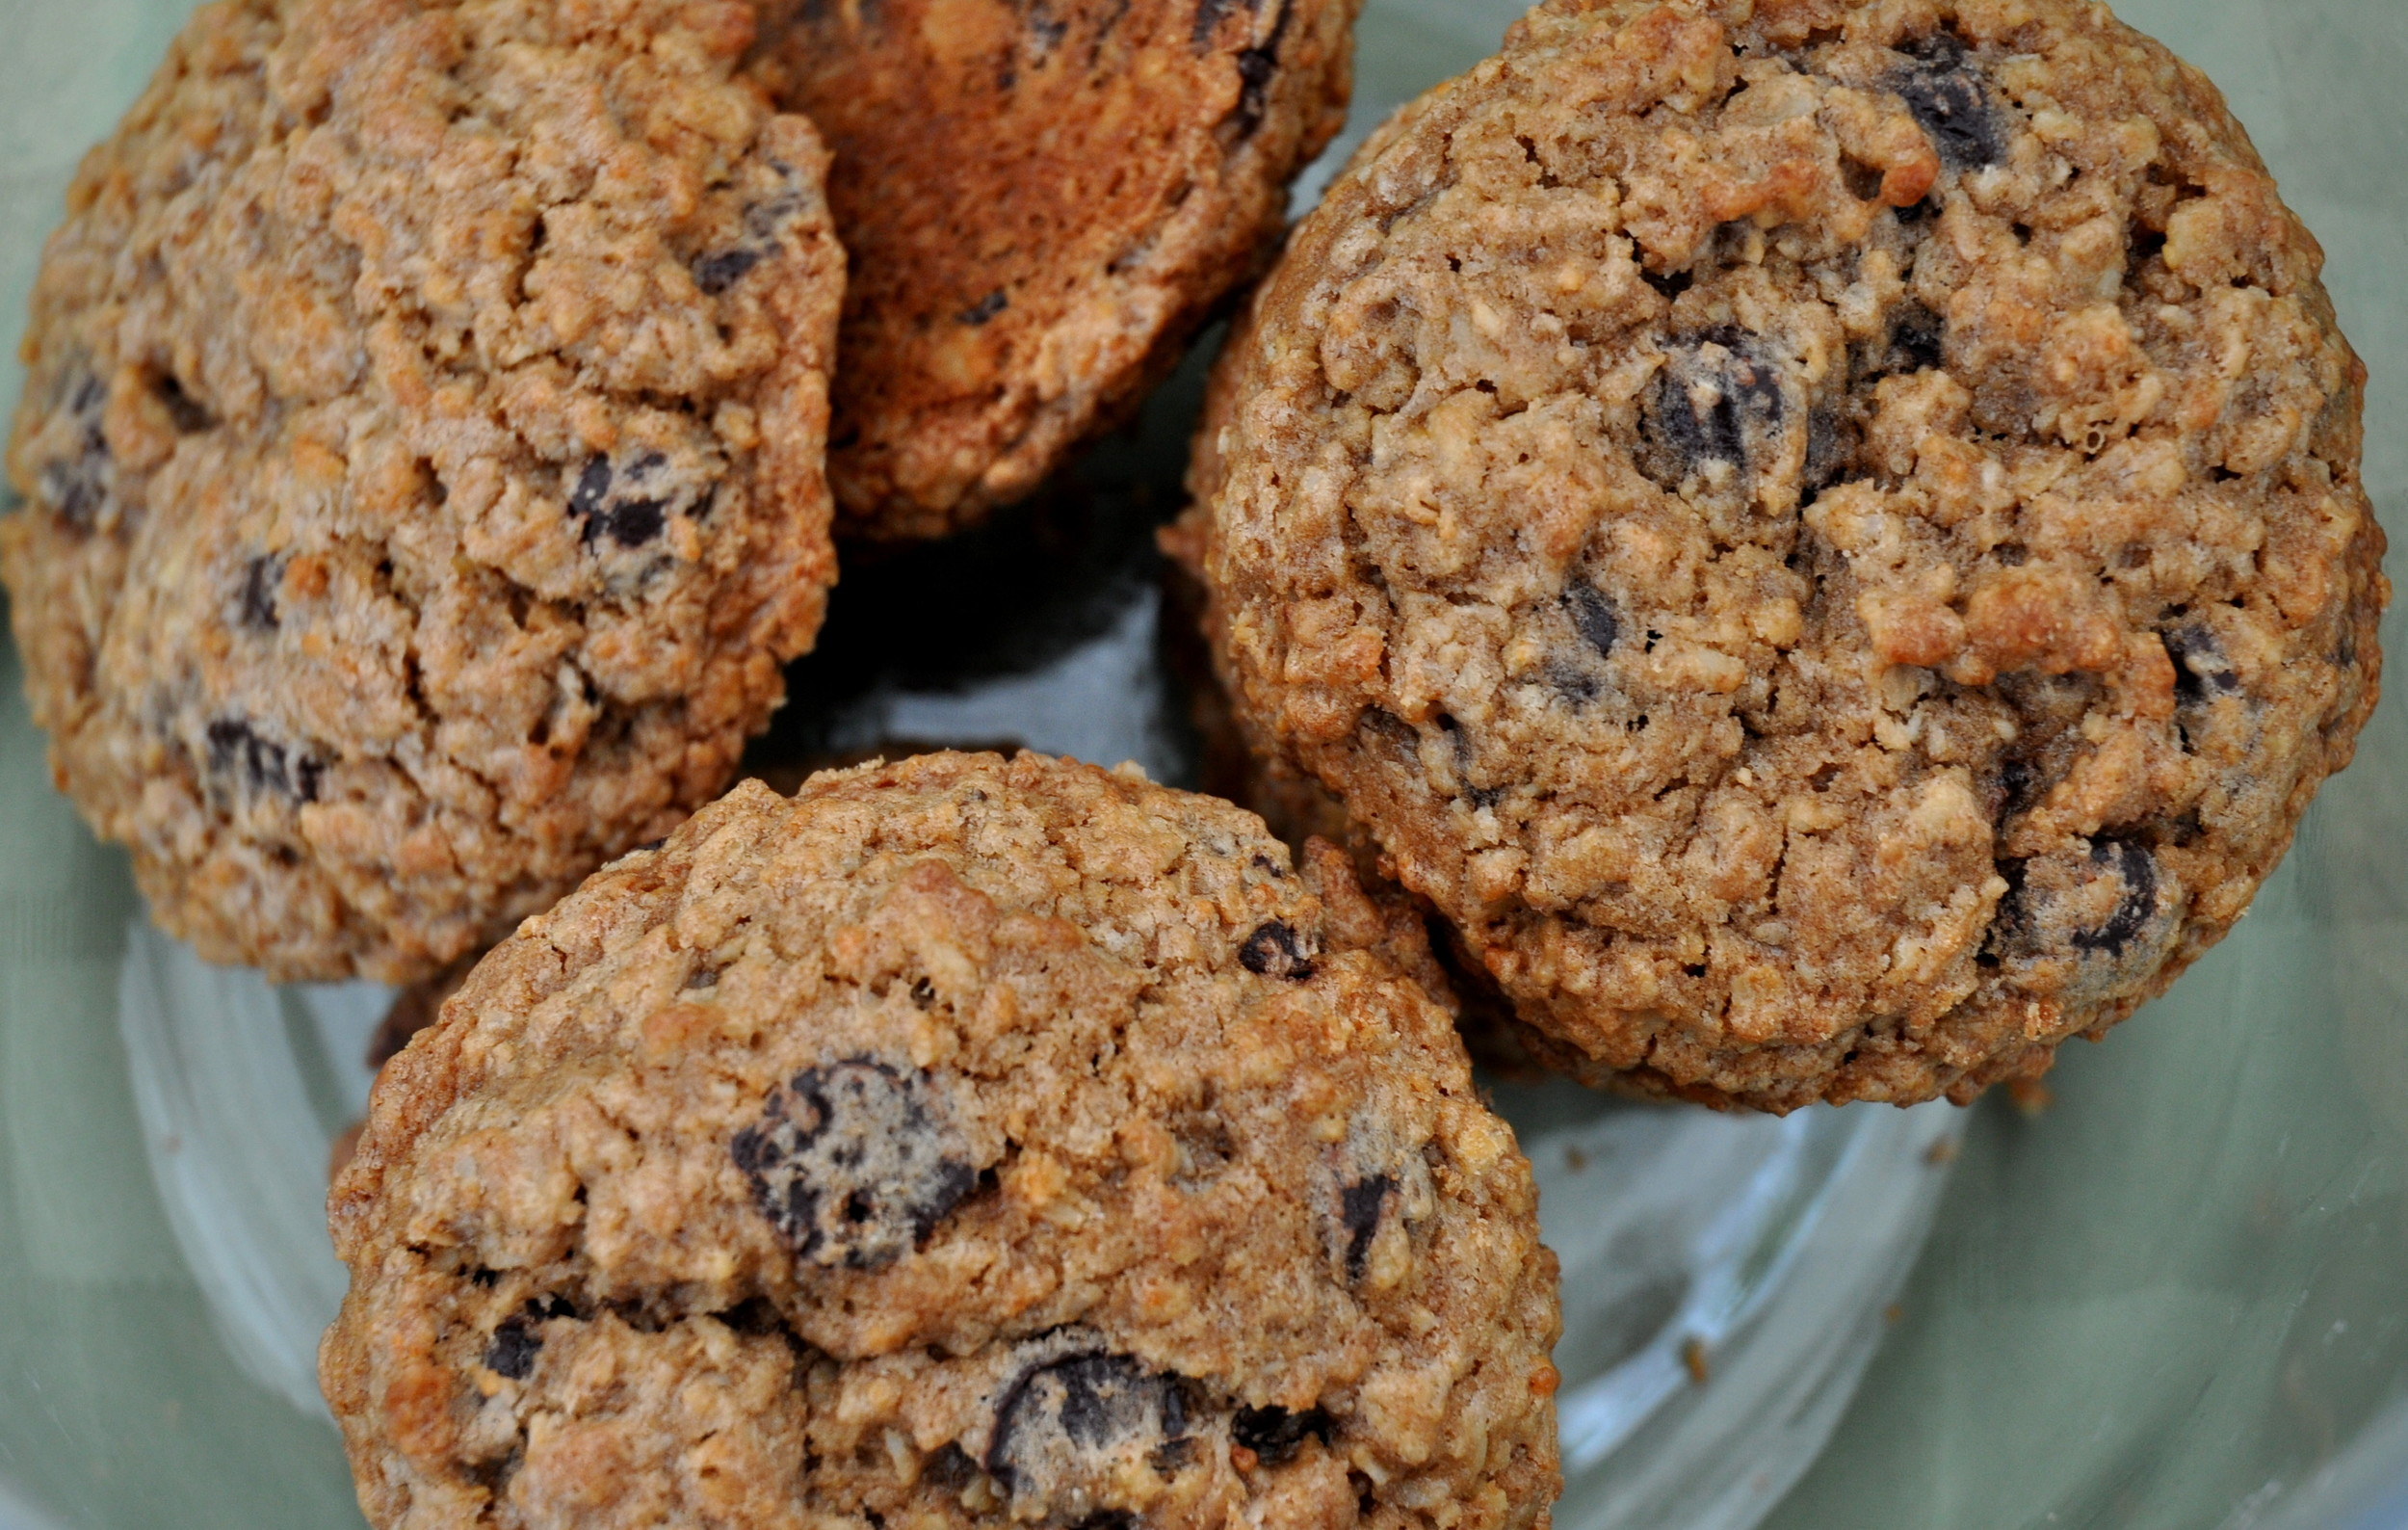 Dark chocolate oatmeal cookies from Pinckney Cookie Cafe. Photo copyright 2014 by Zachary D. Lyons.